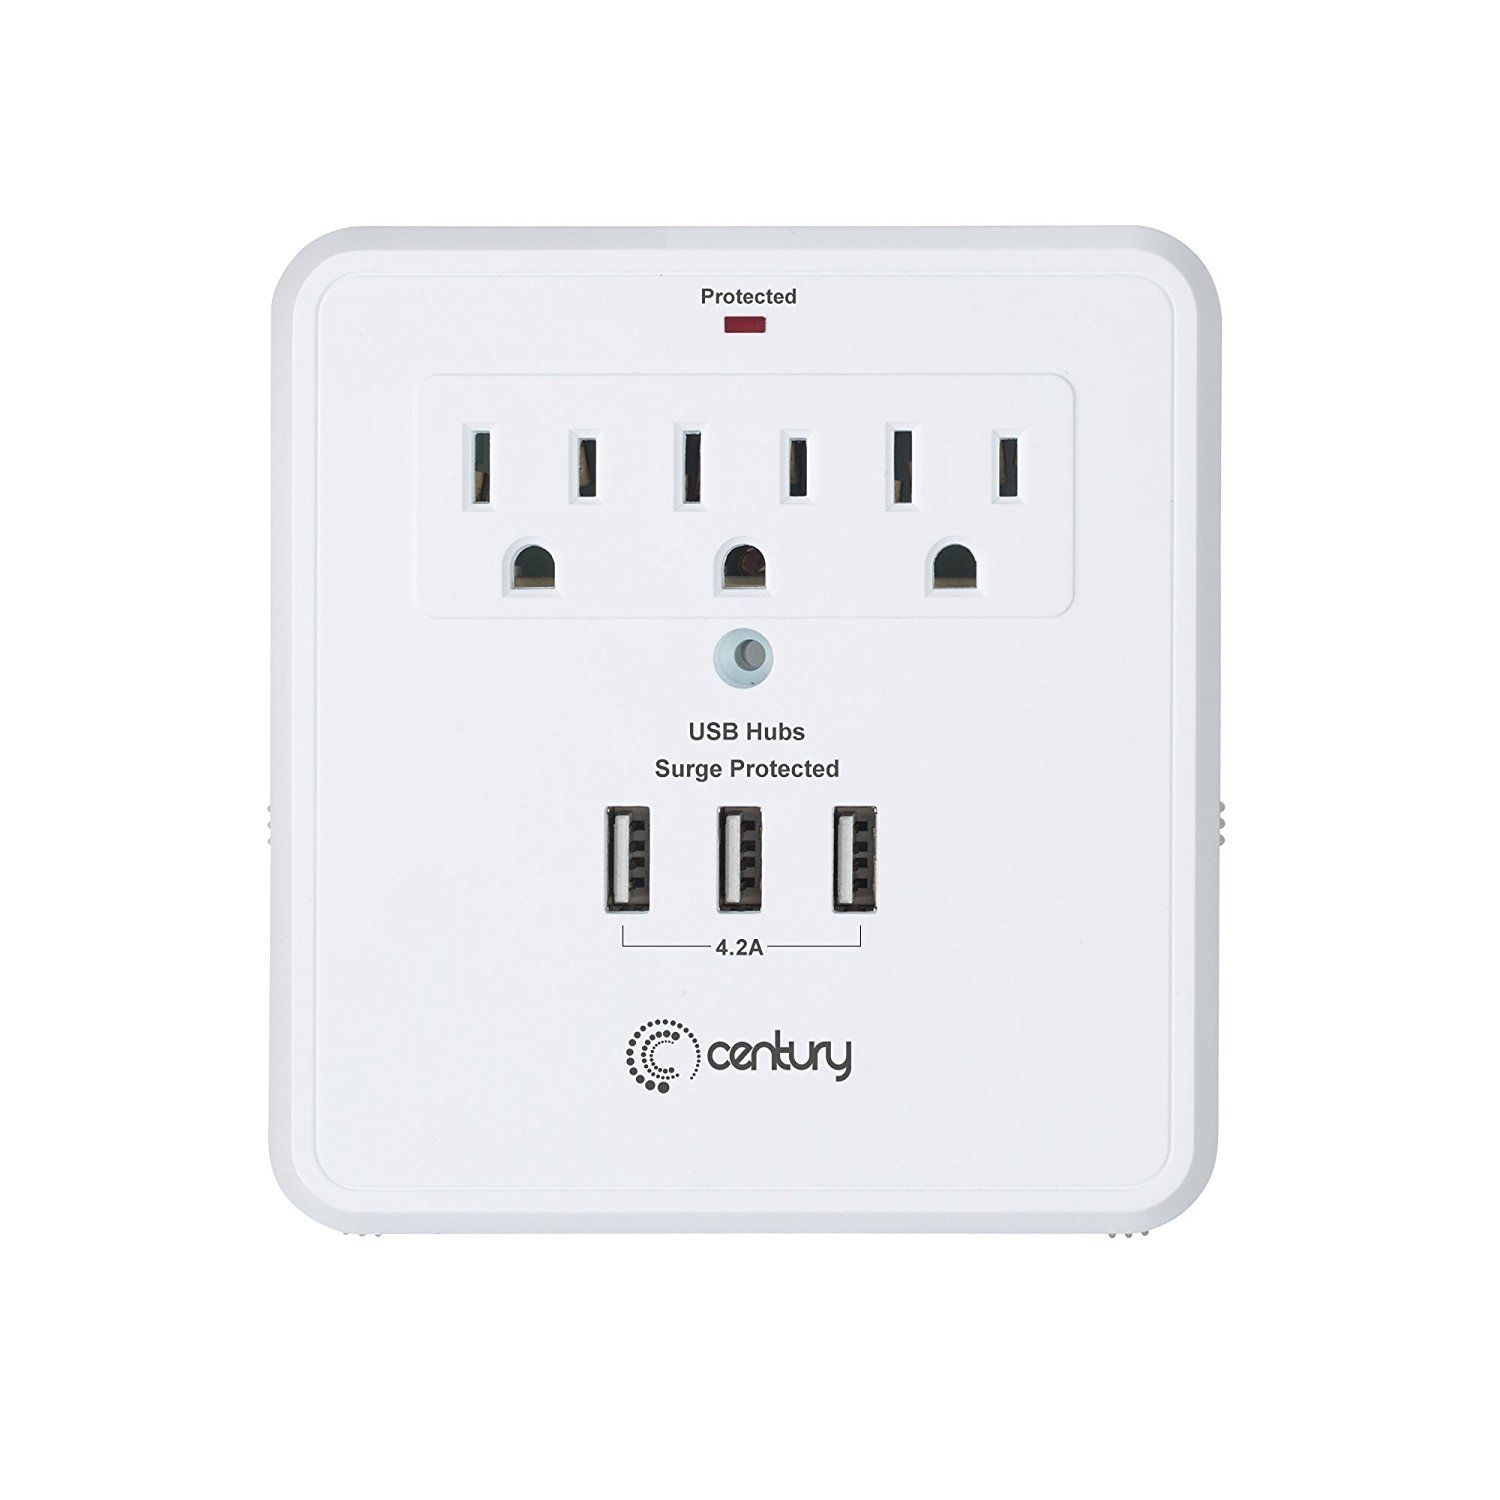 Century 3 Outlet Wall Mount Surge Protector Adapter with 3 USB Charging Ports (4.2A) White by Century